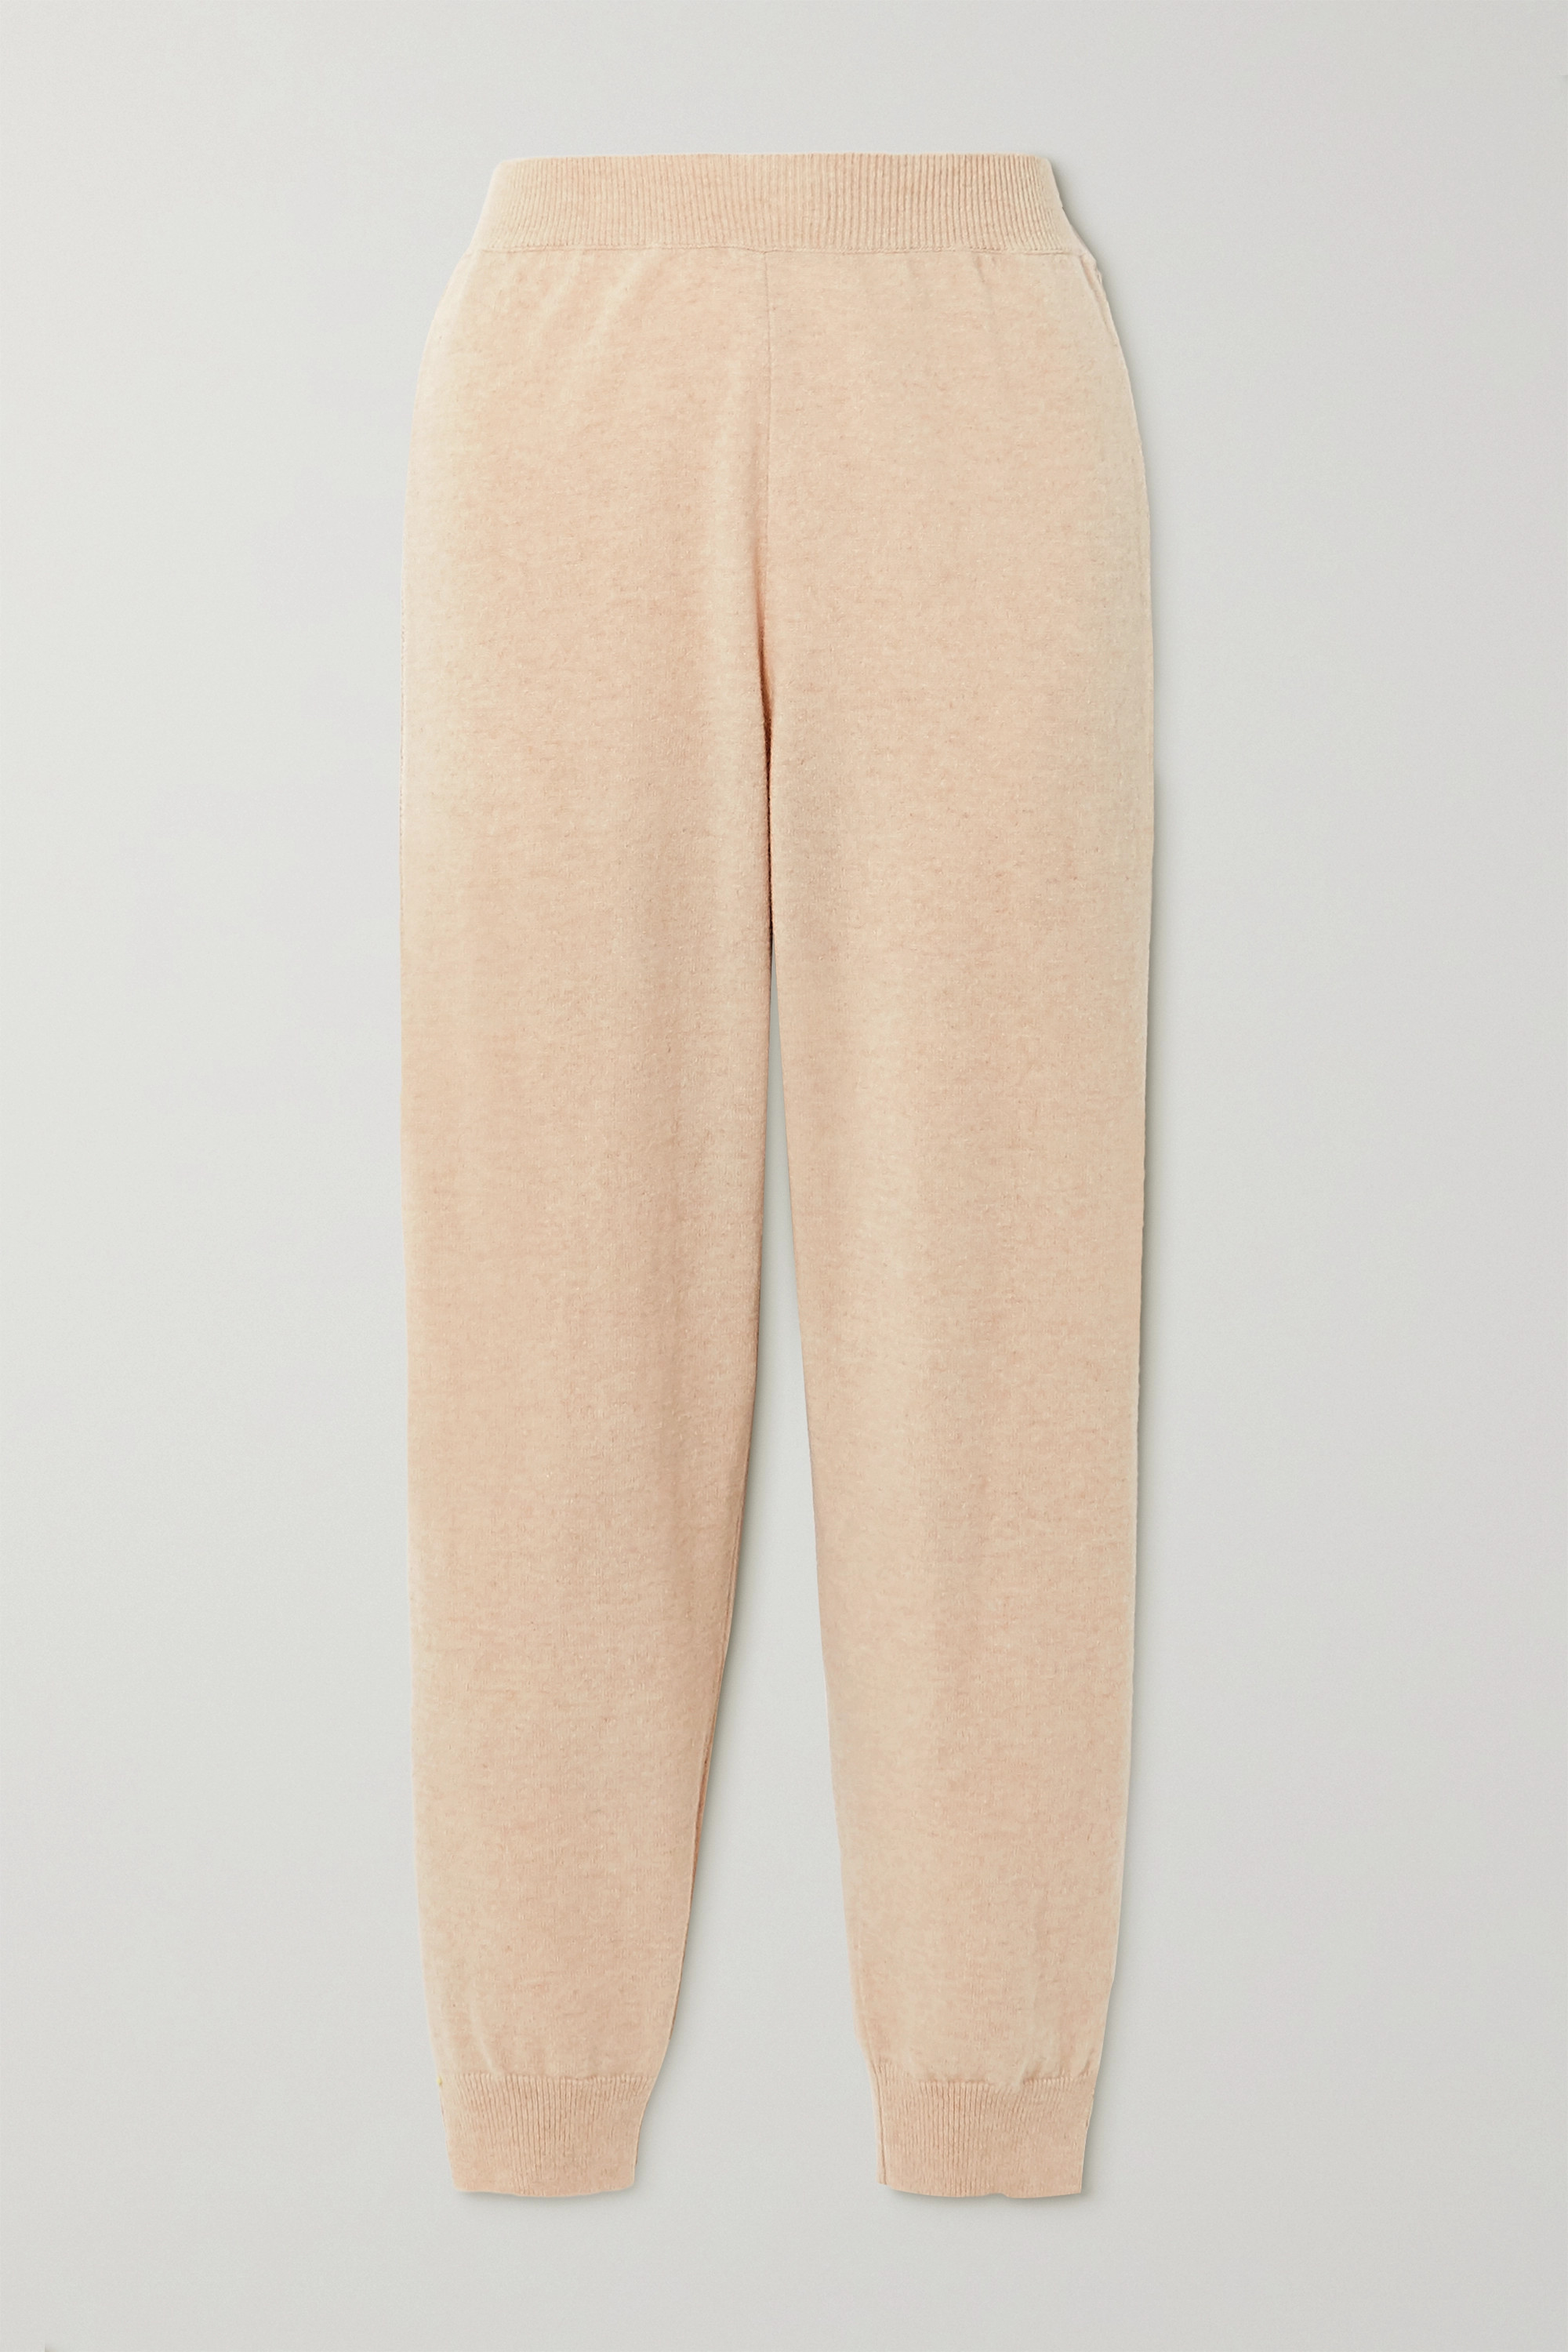 Stella McCartney + NET SUSTAIN crochet-trimmed cashmere and wool-blend track pants